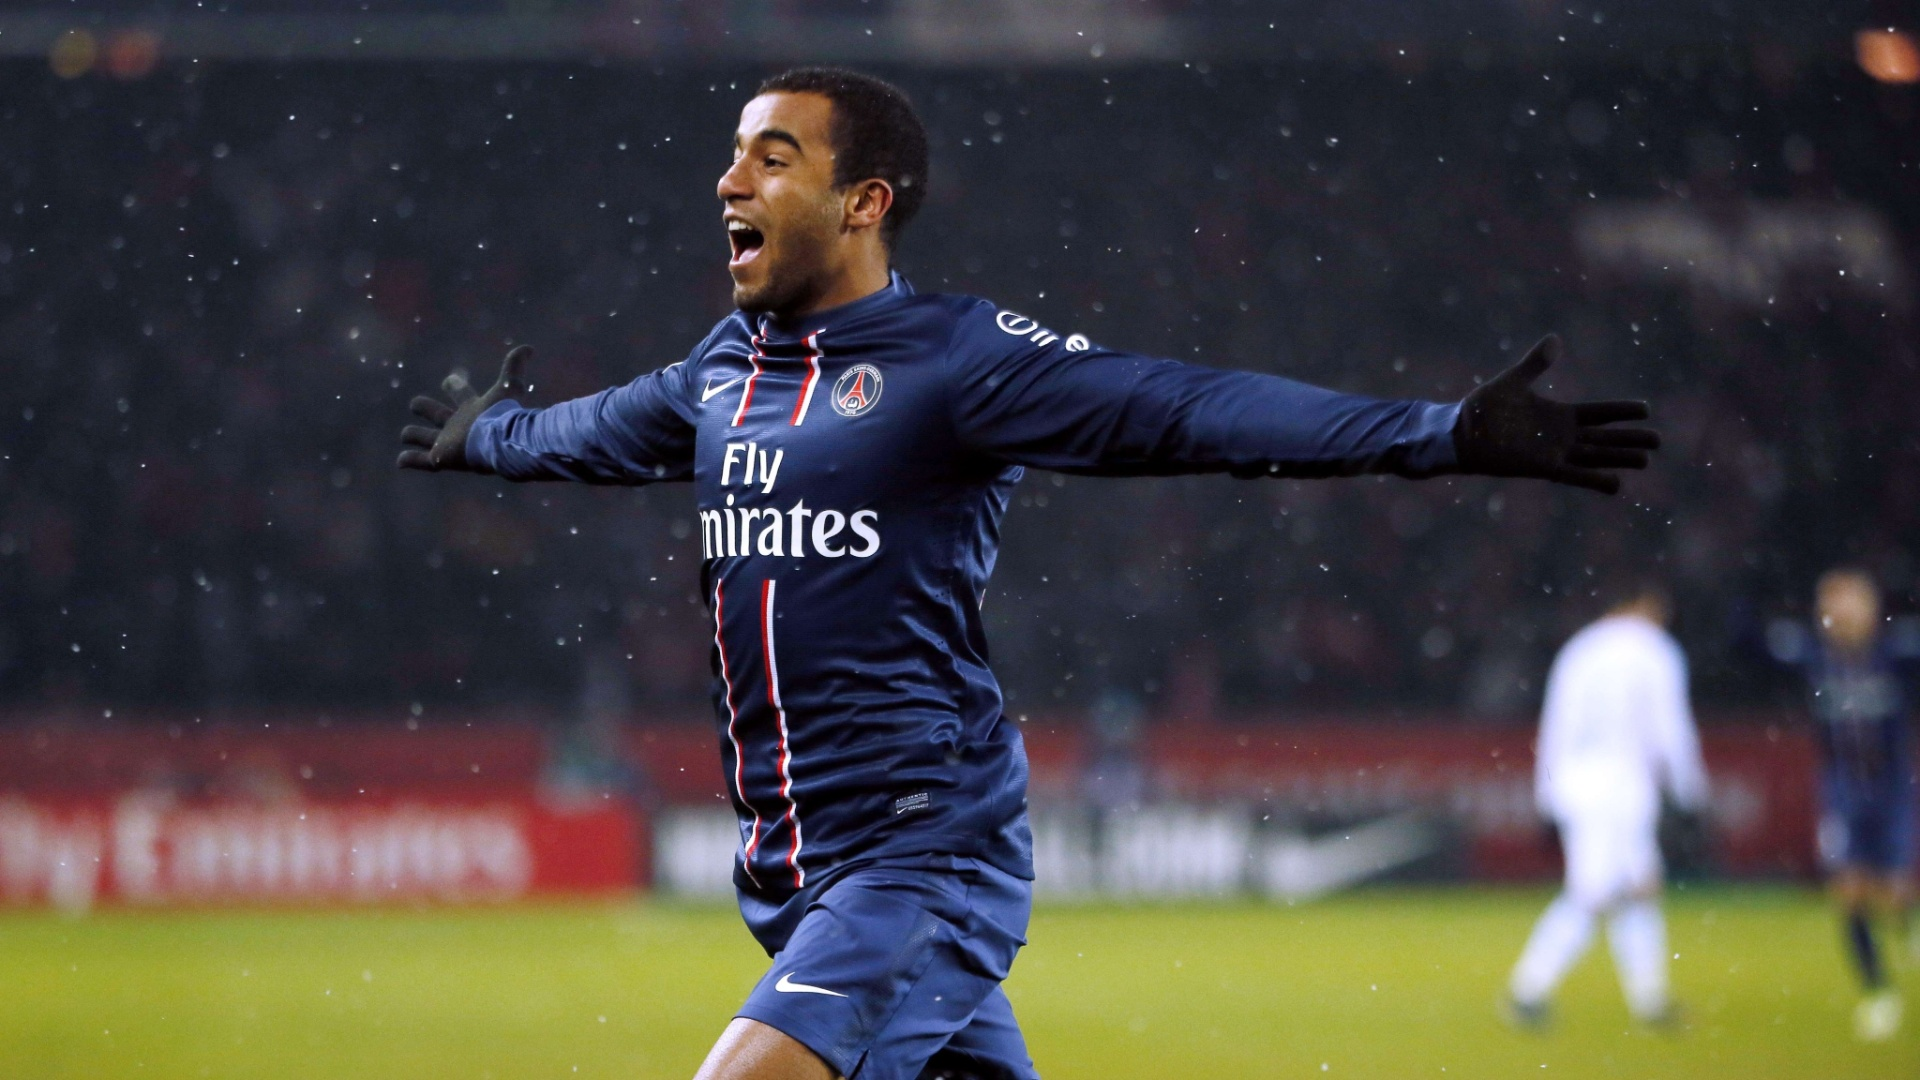 surprising-lucas-moura-psg-2013-wallpaper